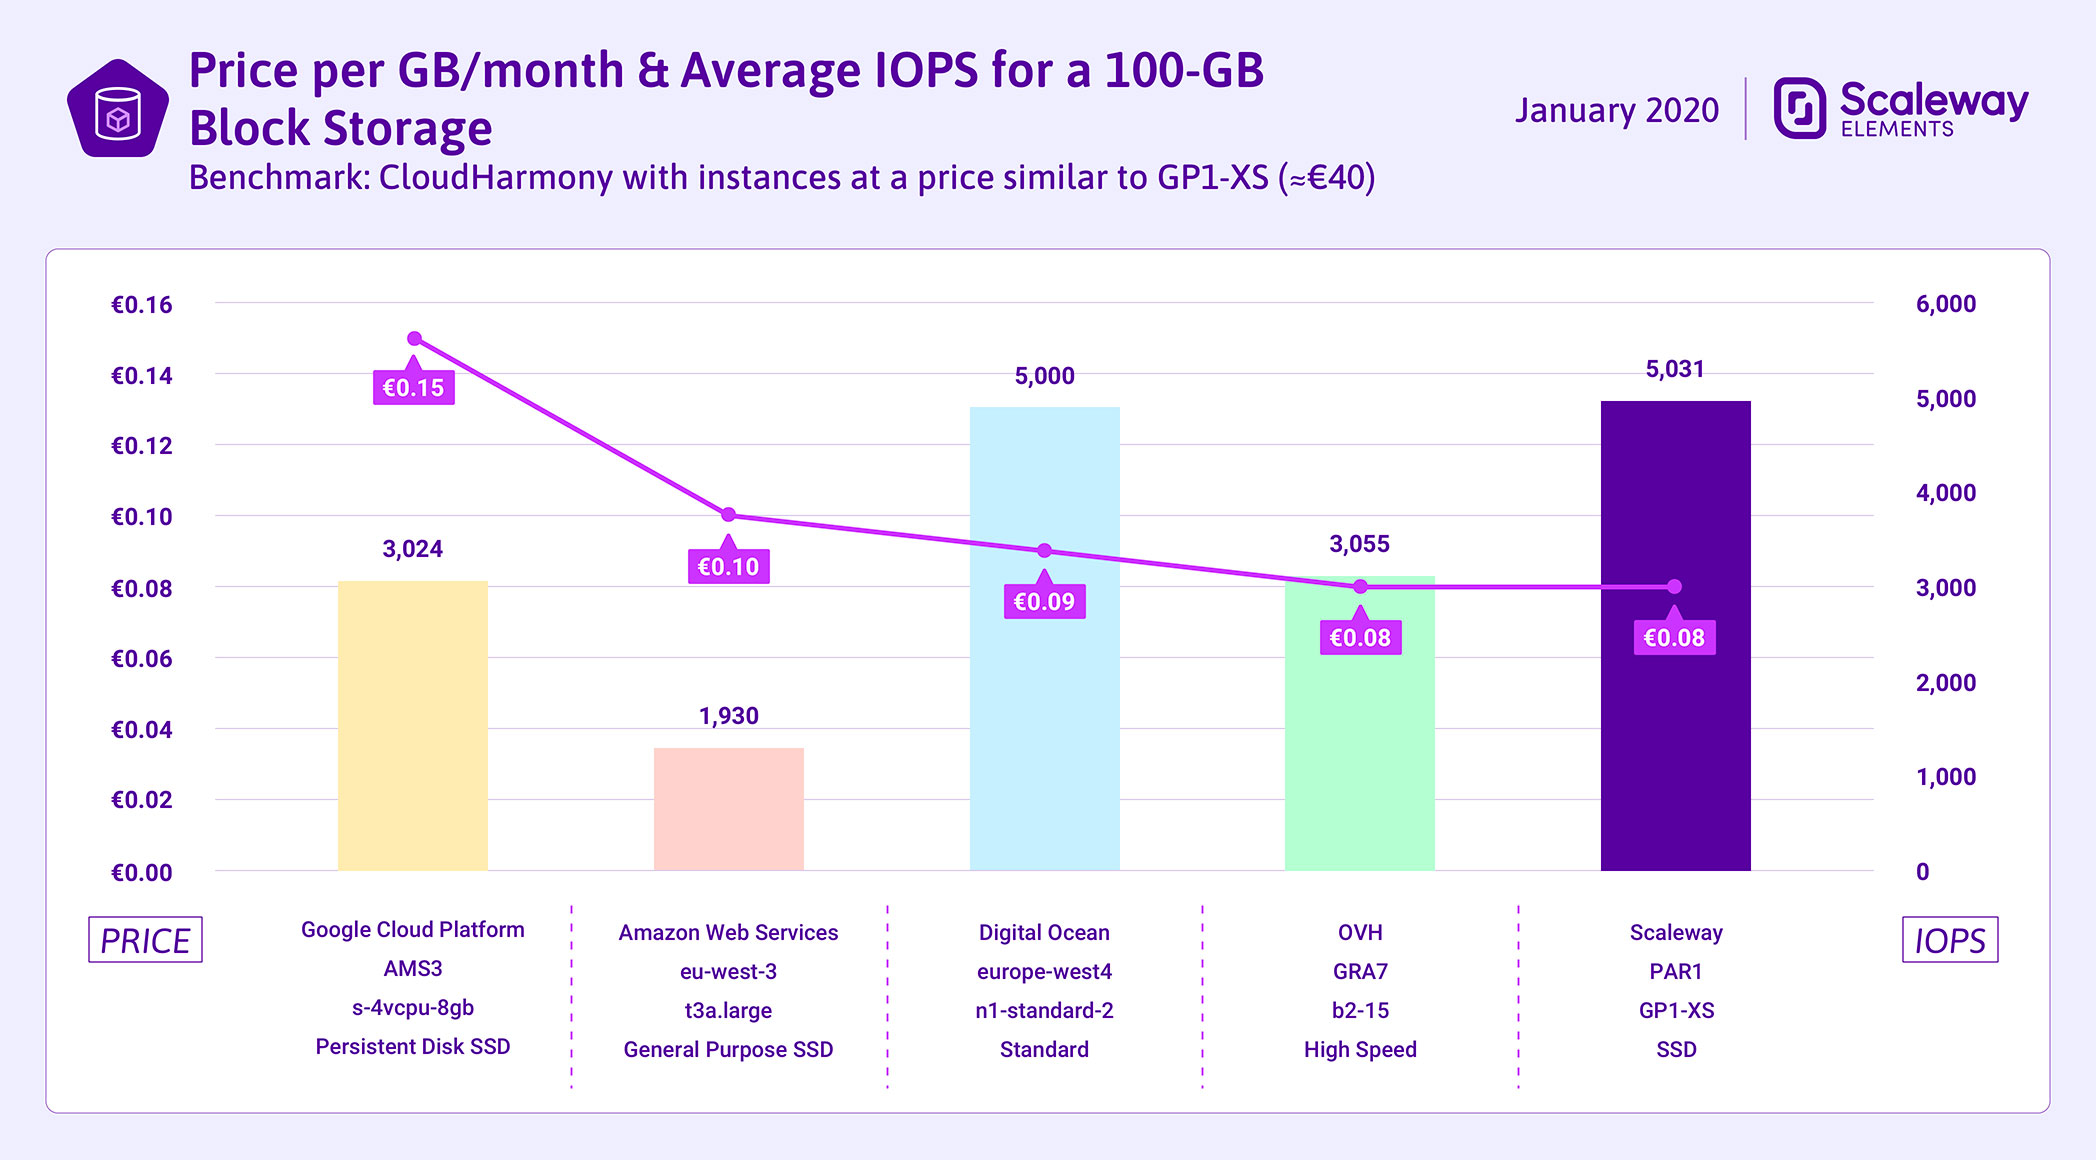 Scaleway Block Storage price and IOPS compared to competitors